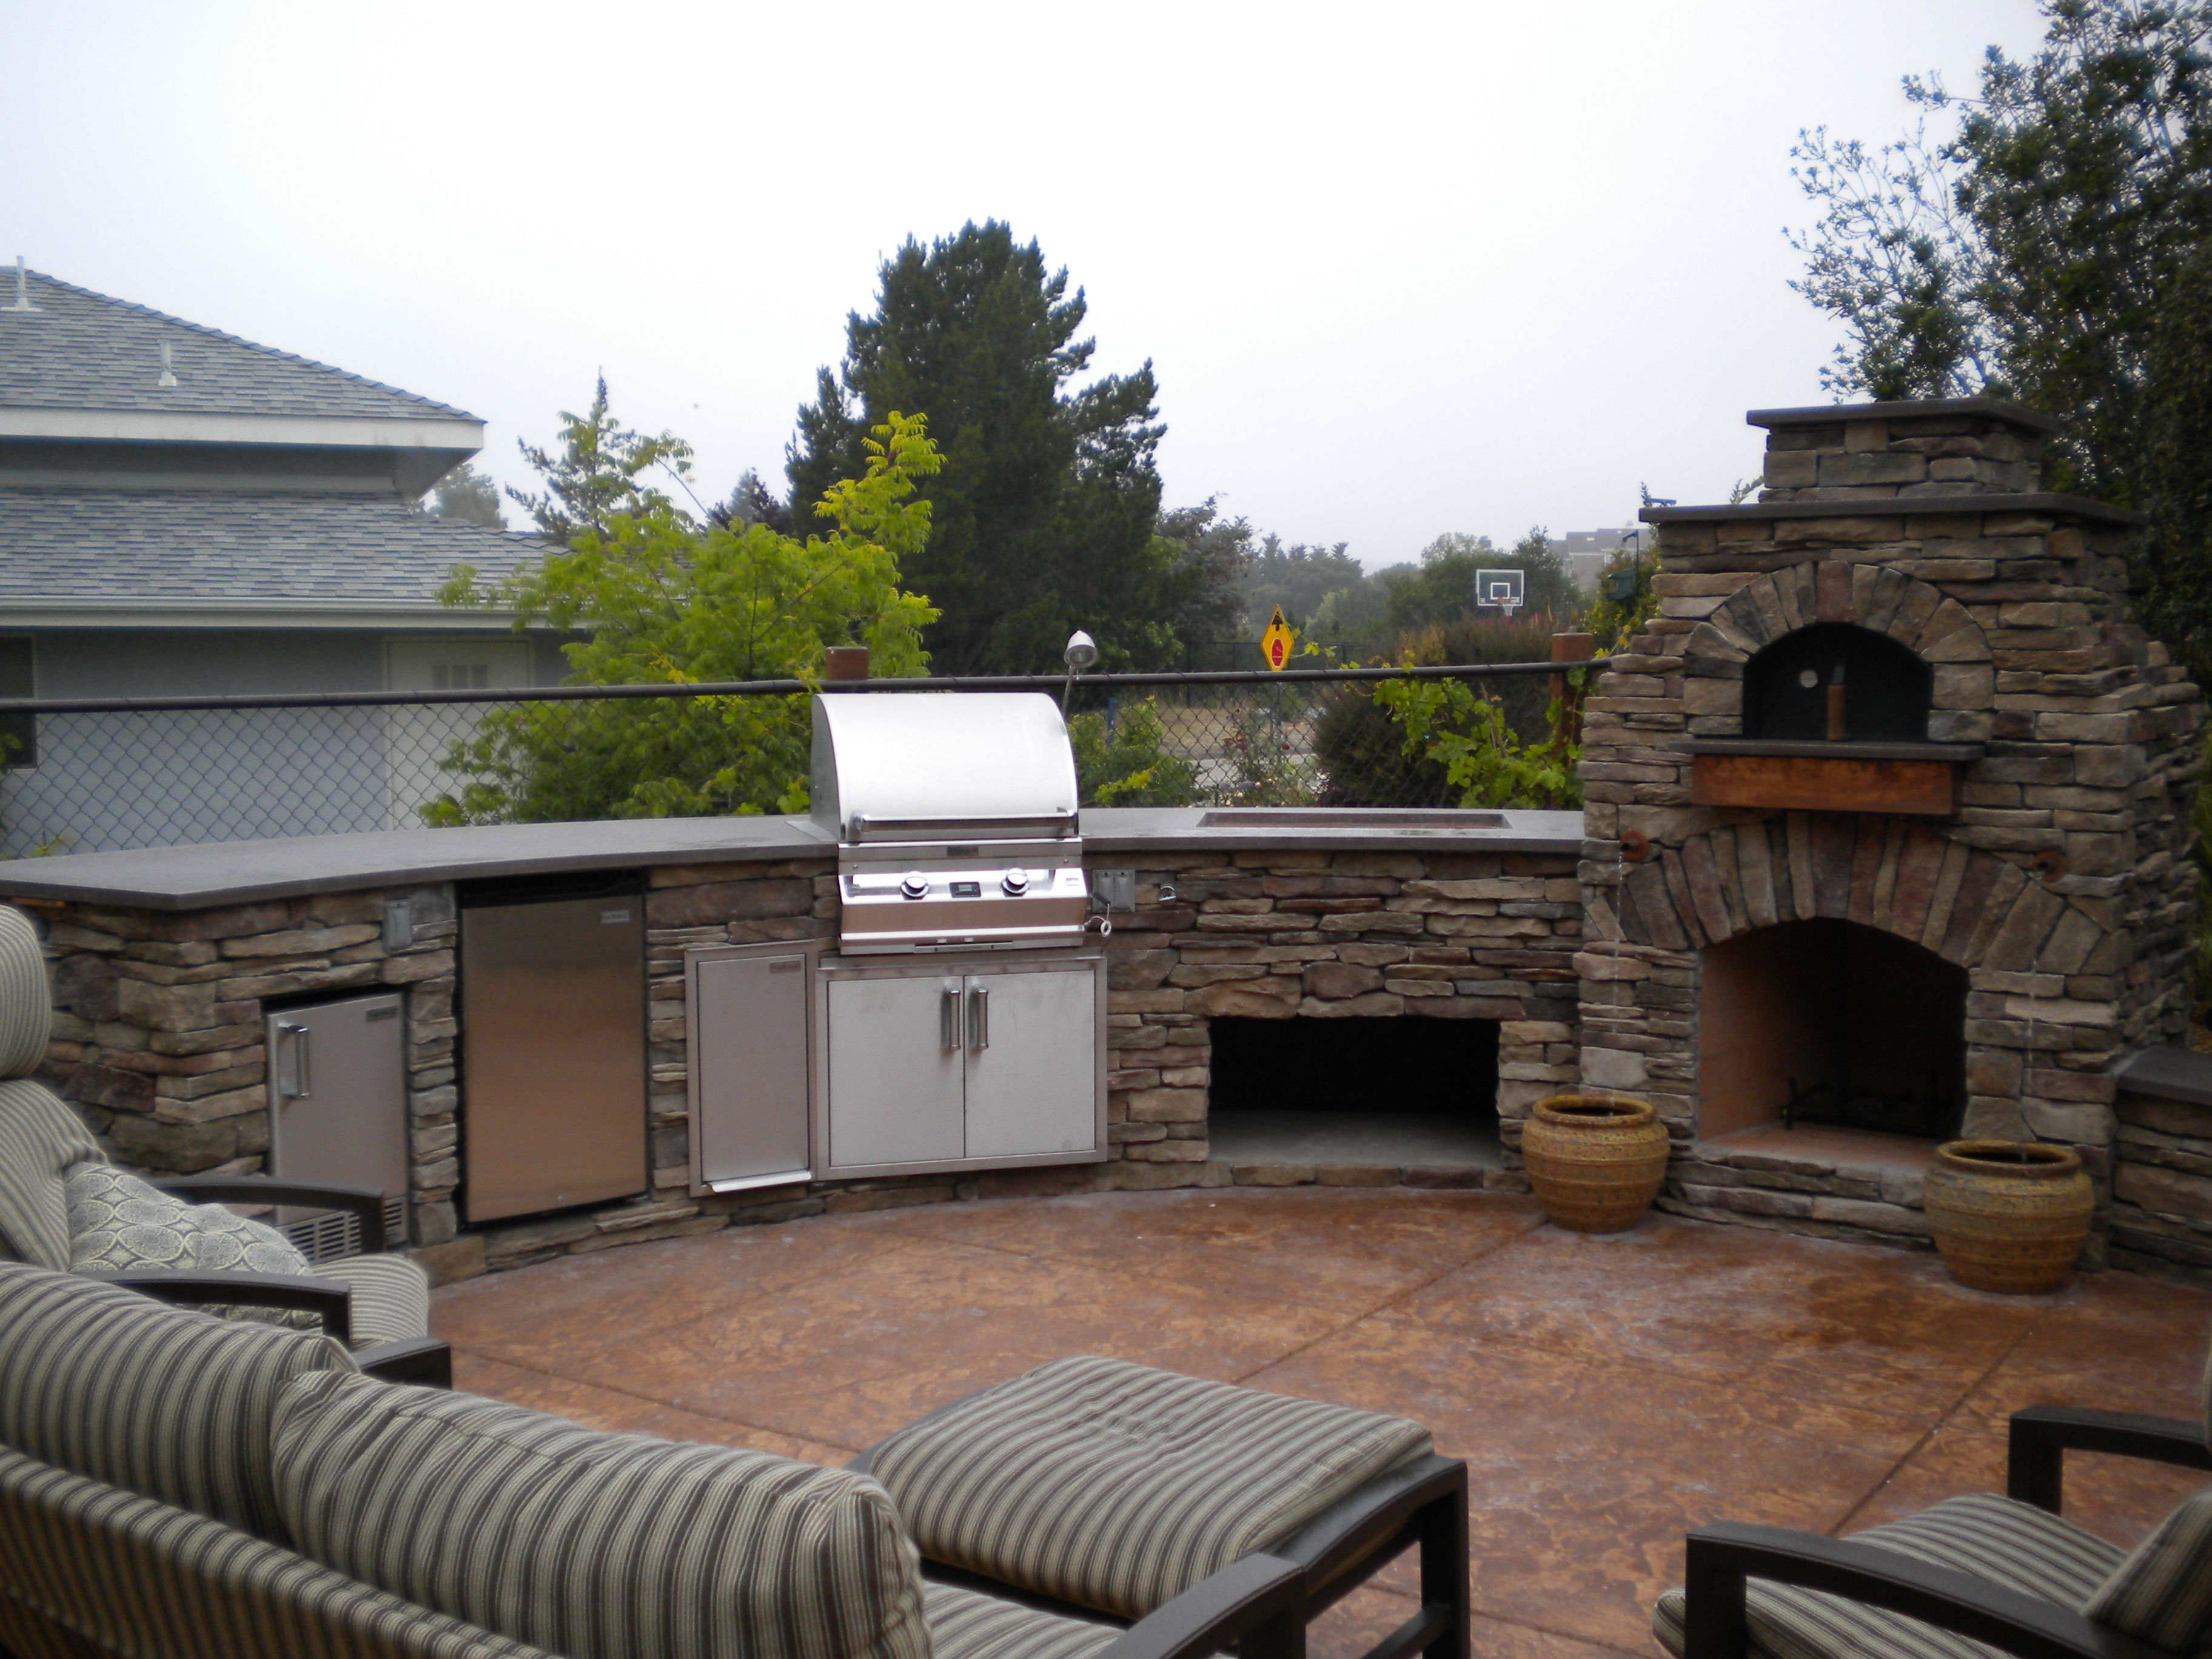 outdoor pizza oven fireplace fire magic appliances along with